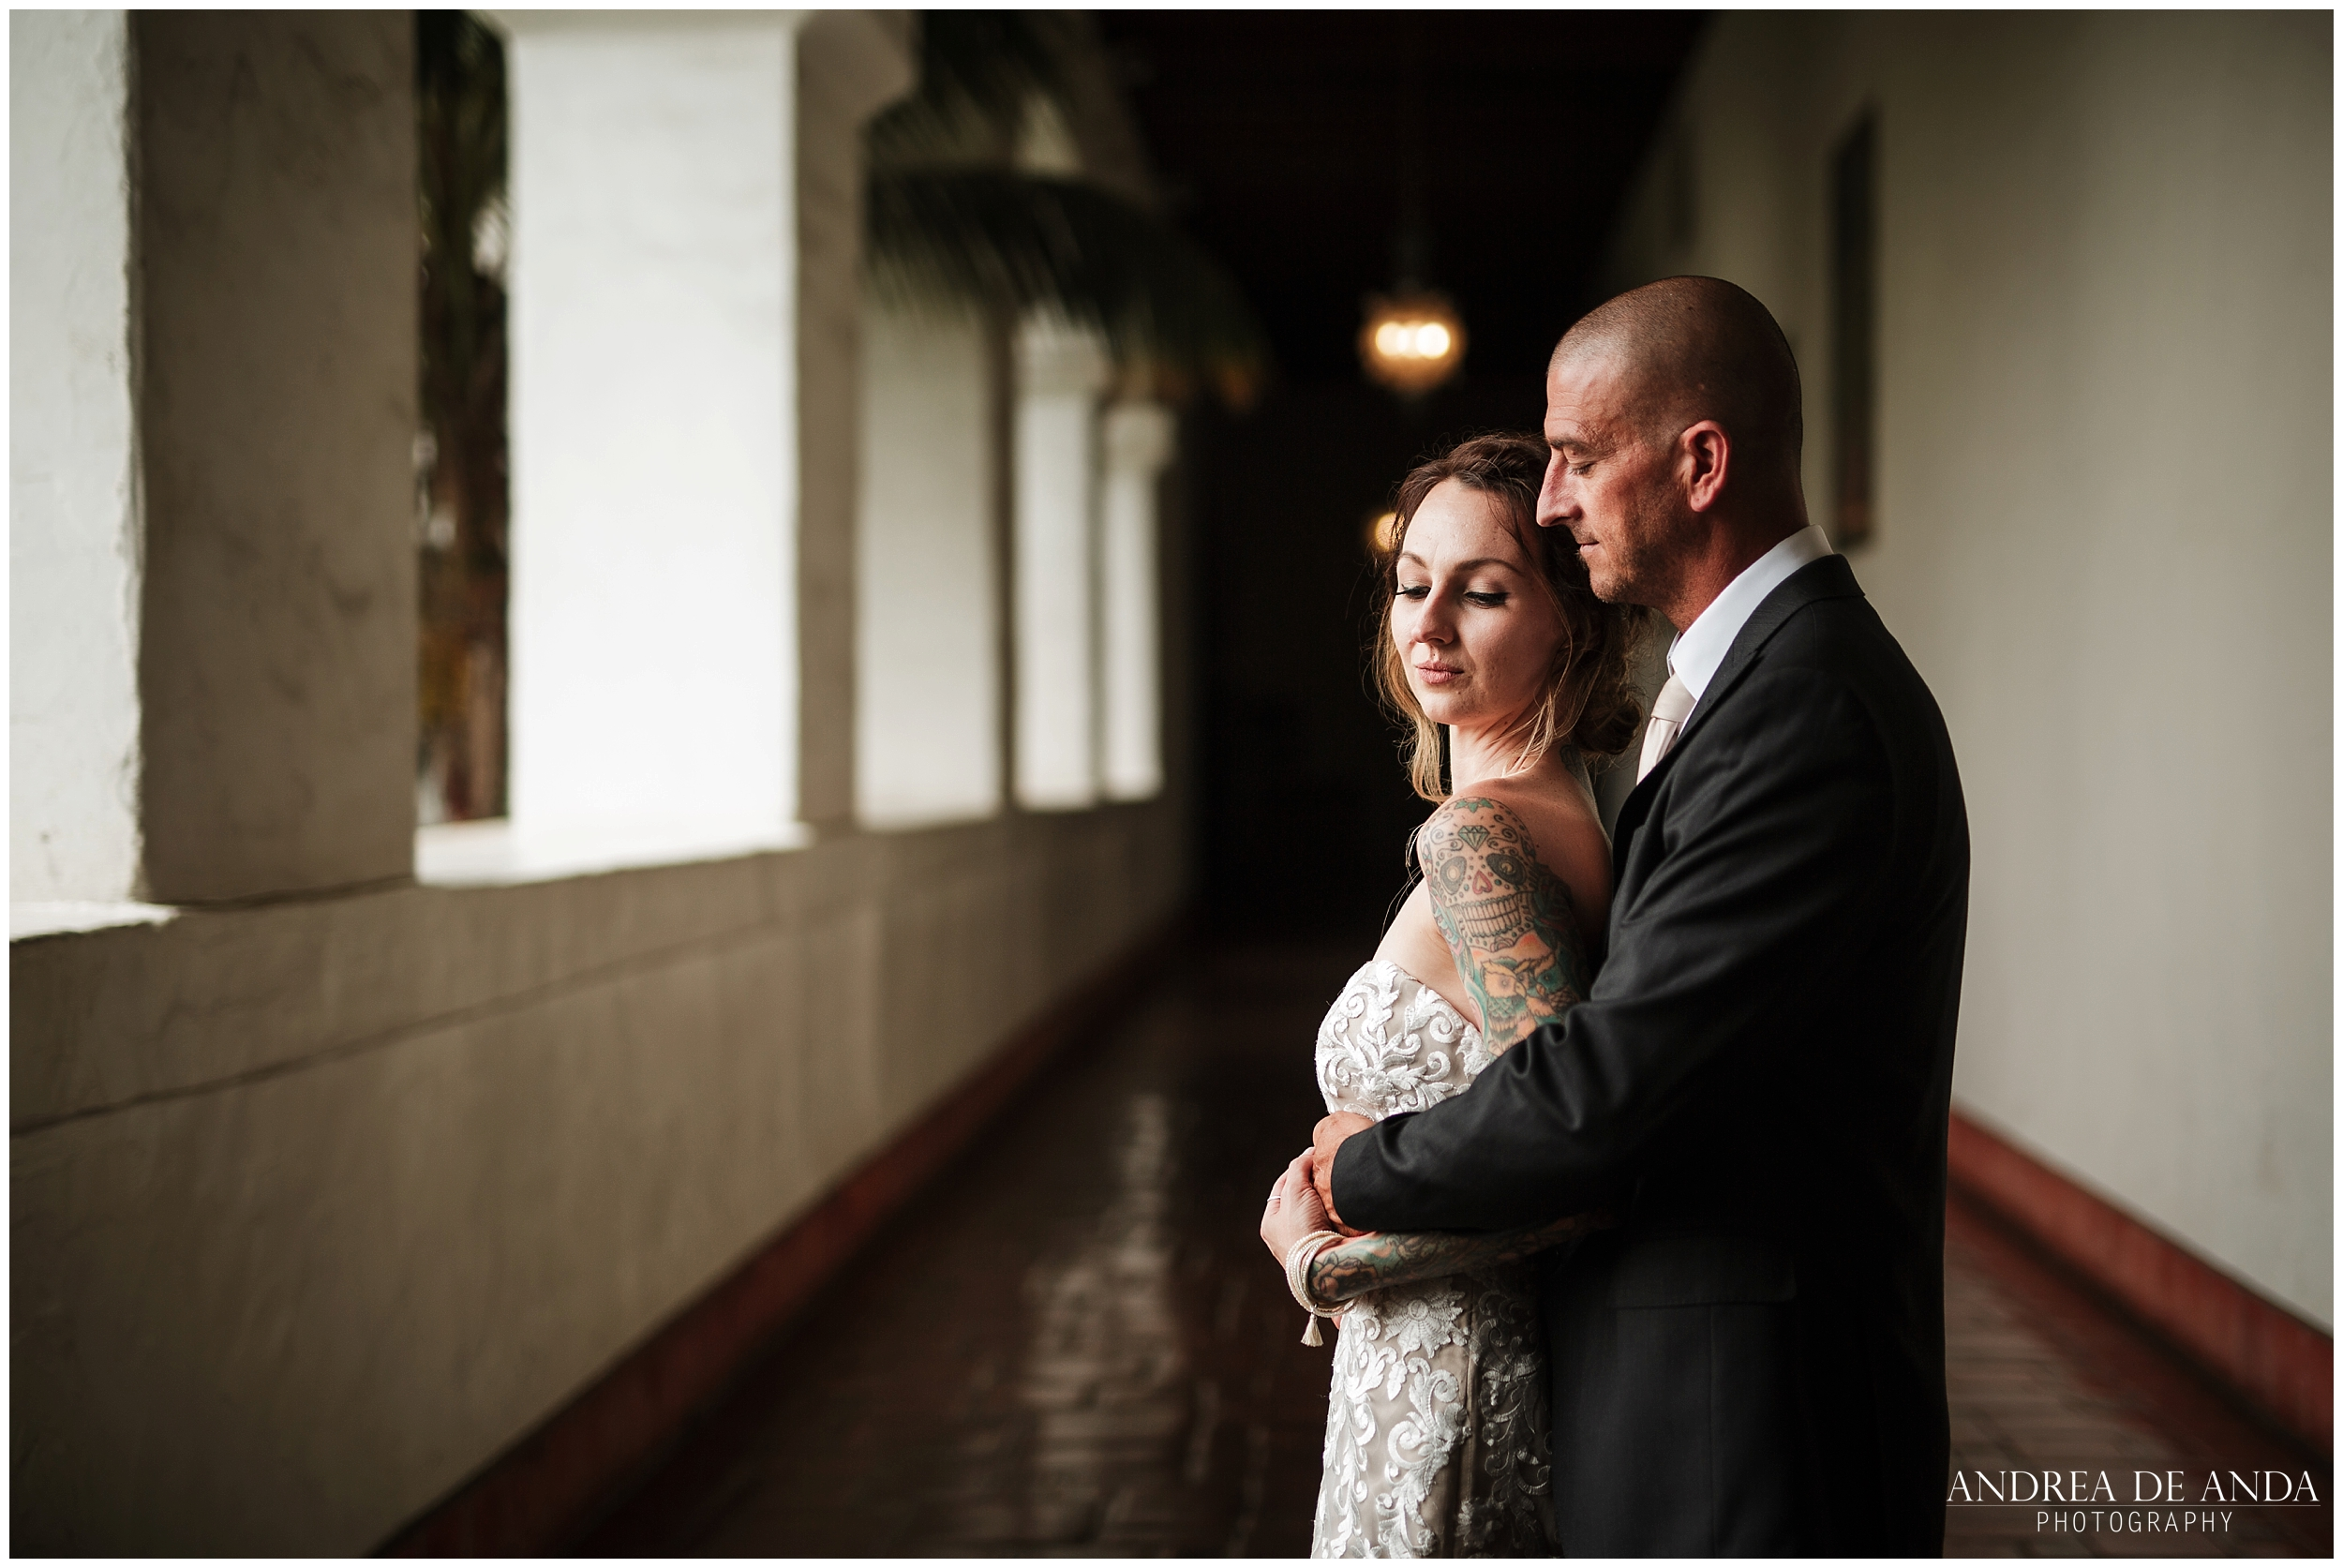 Santa Barbara Courthouse Elopement by Andrea de Anda Photography__0019.jpg